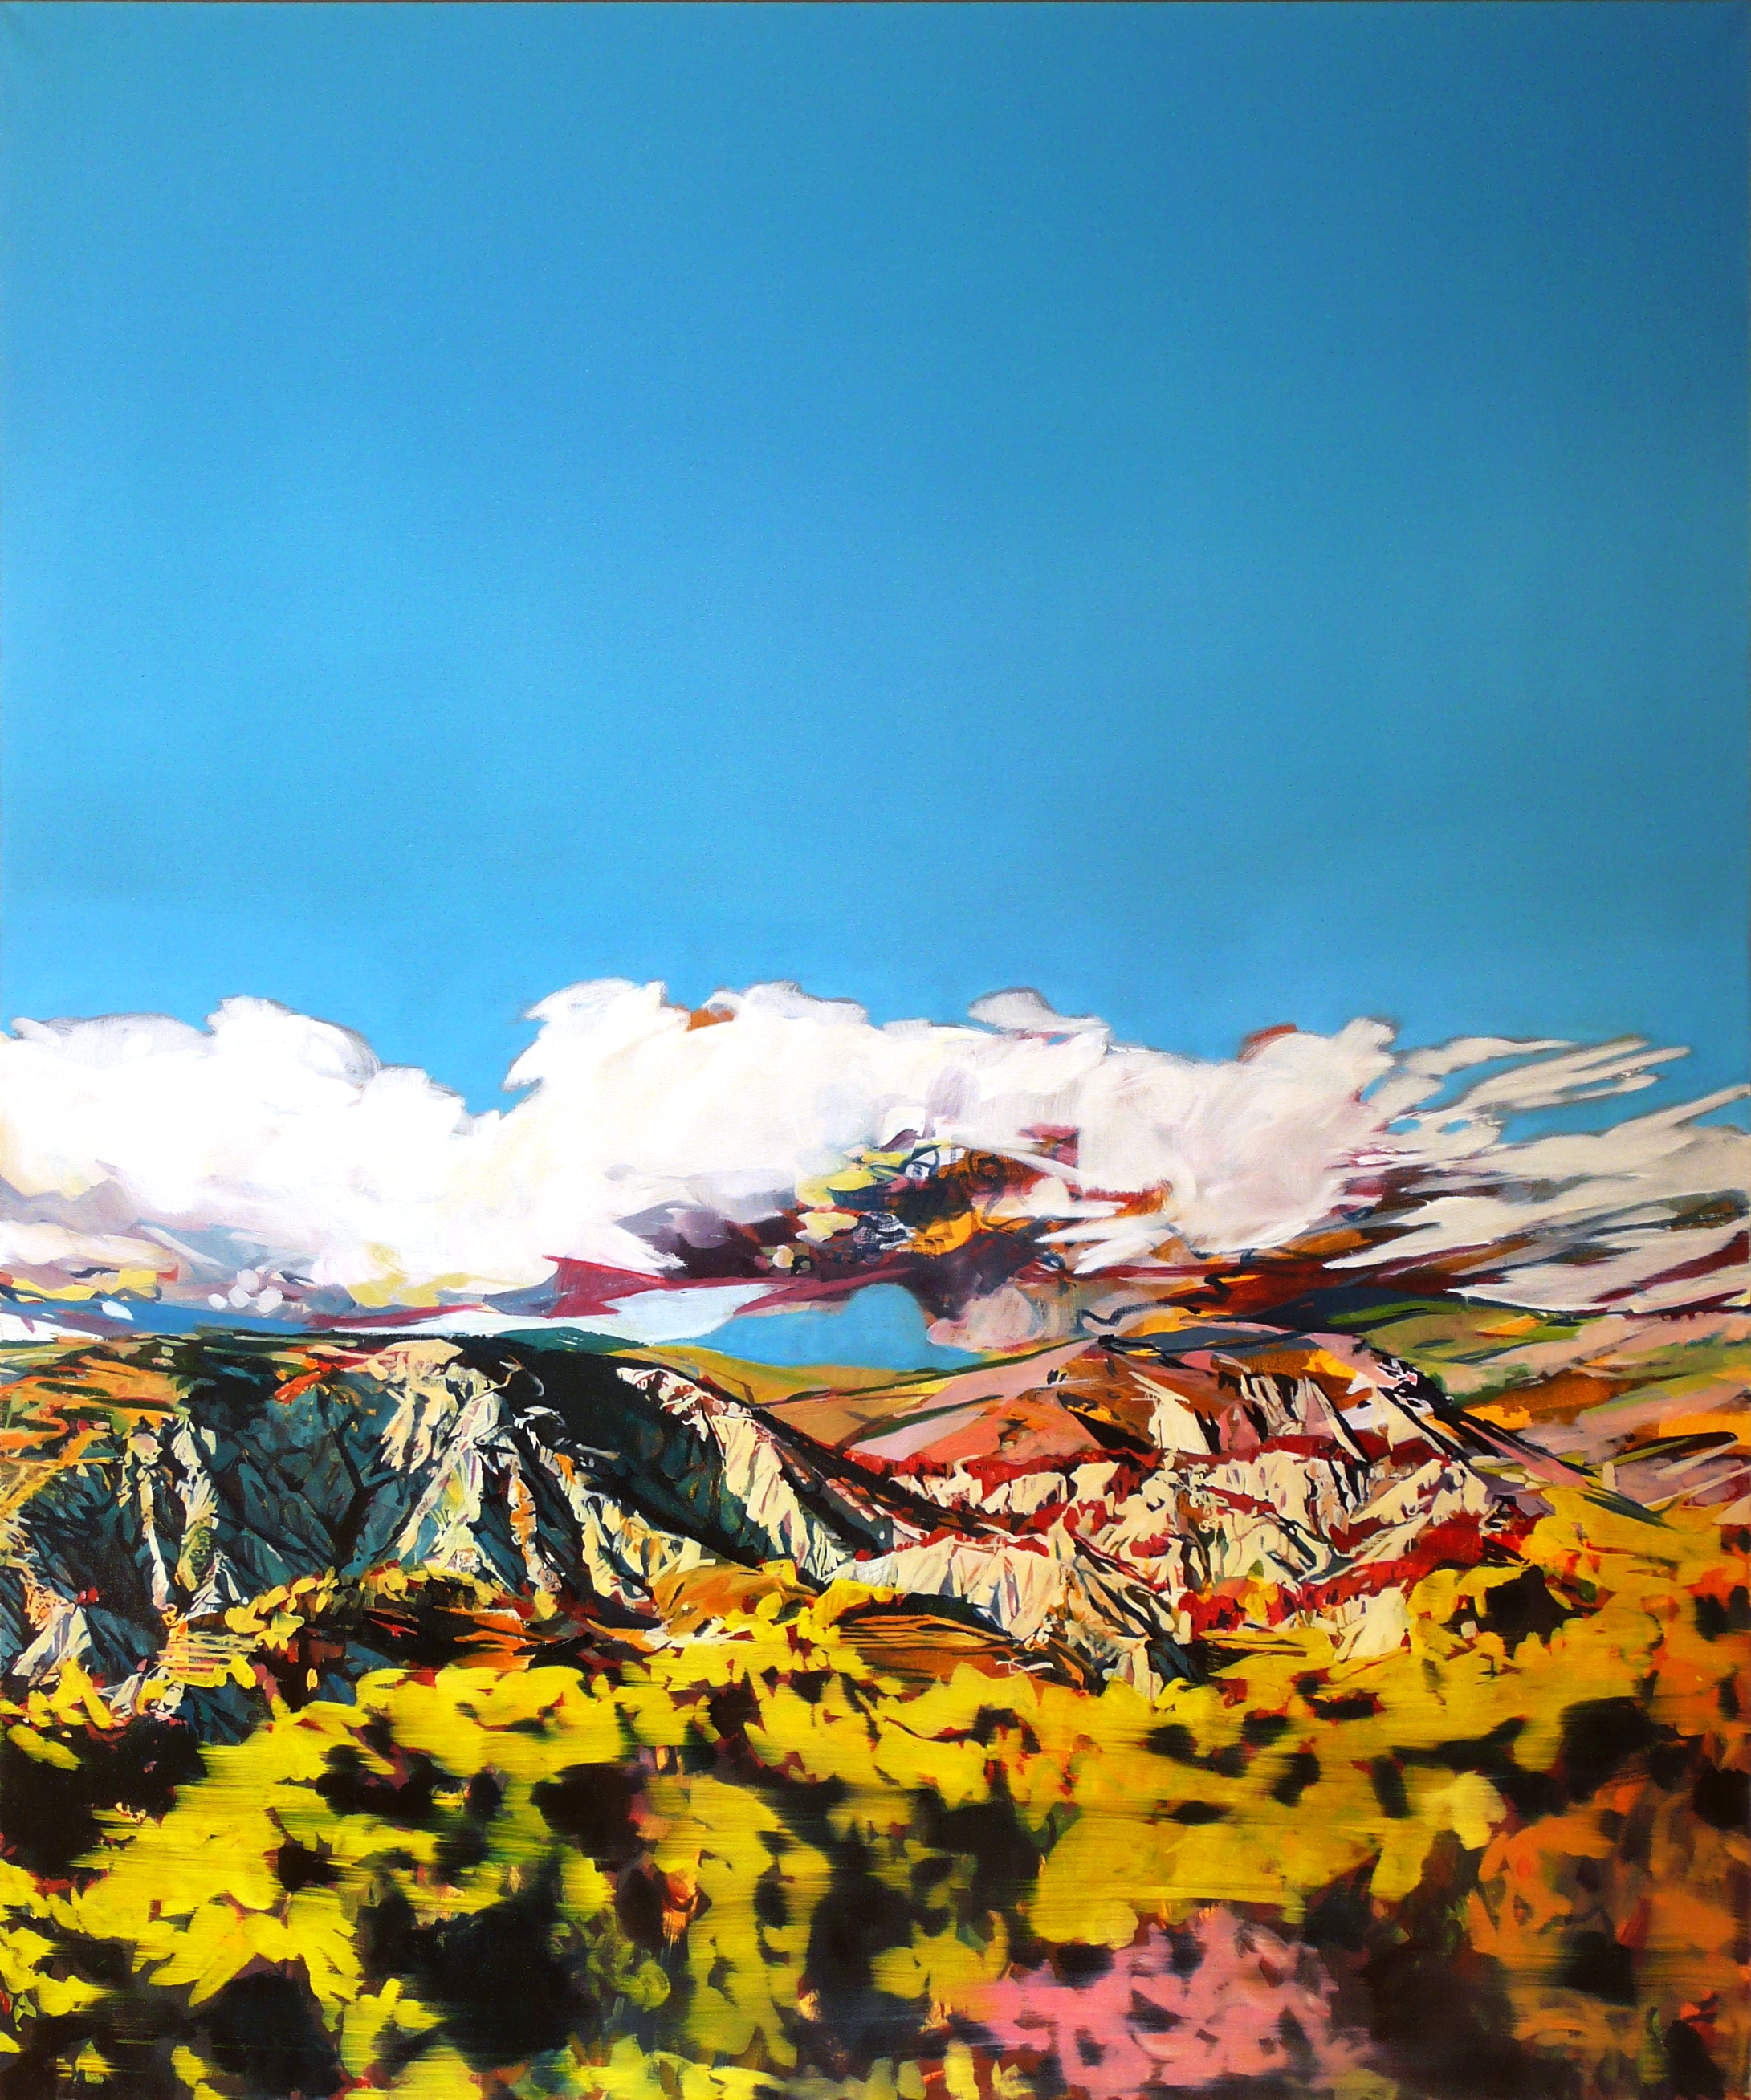 The Rise and Fall, 2010-11, oil on canvas, 120 x 100cm.